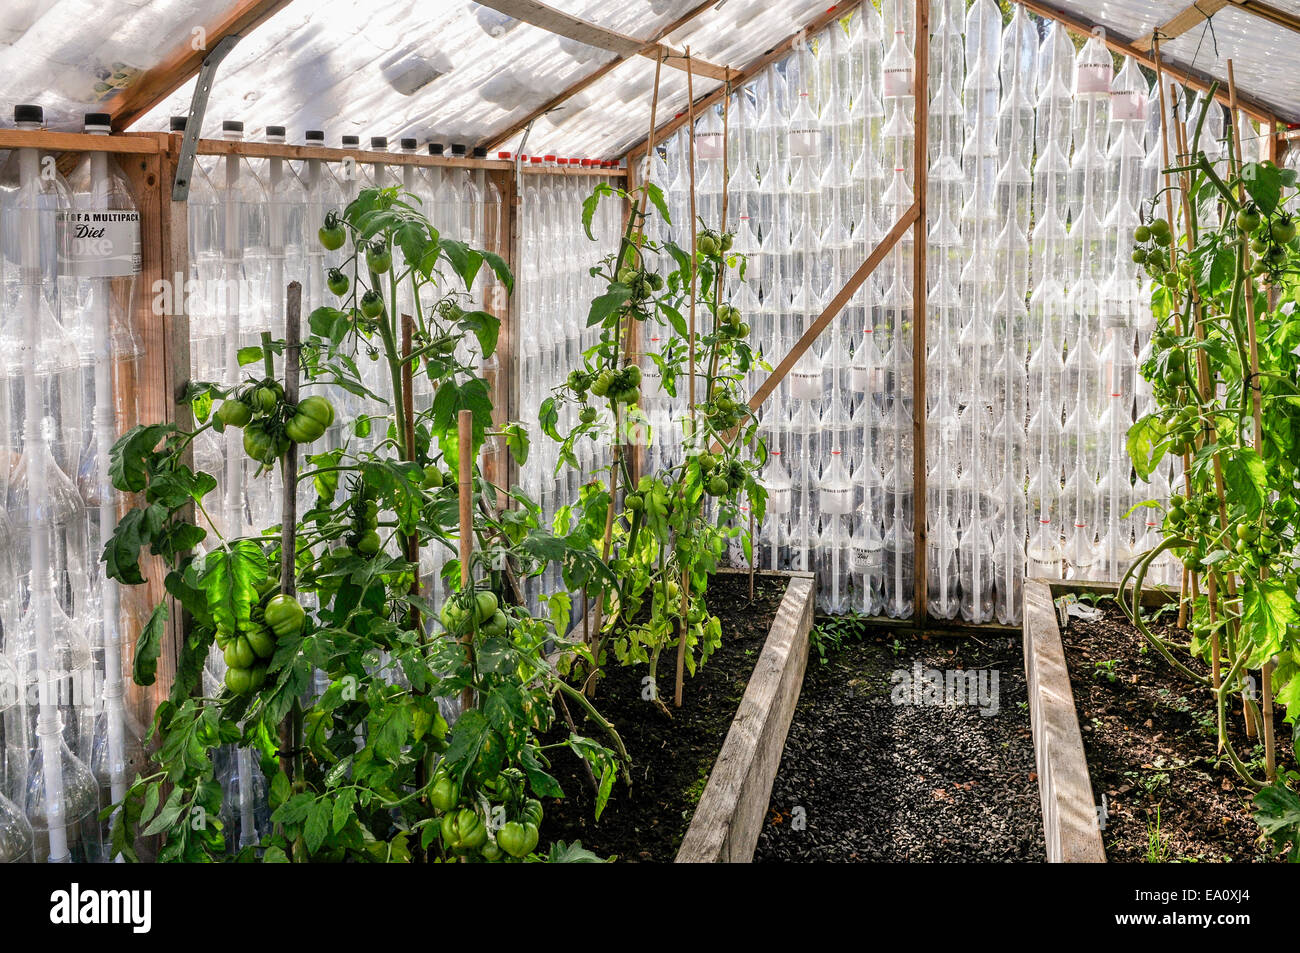 Plants Growing In A Greenhouse Made Entirely Of Recycled